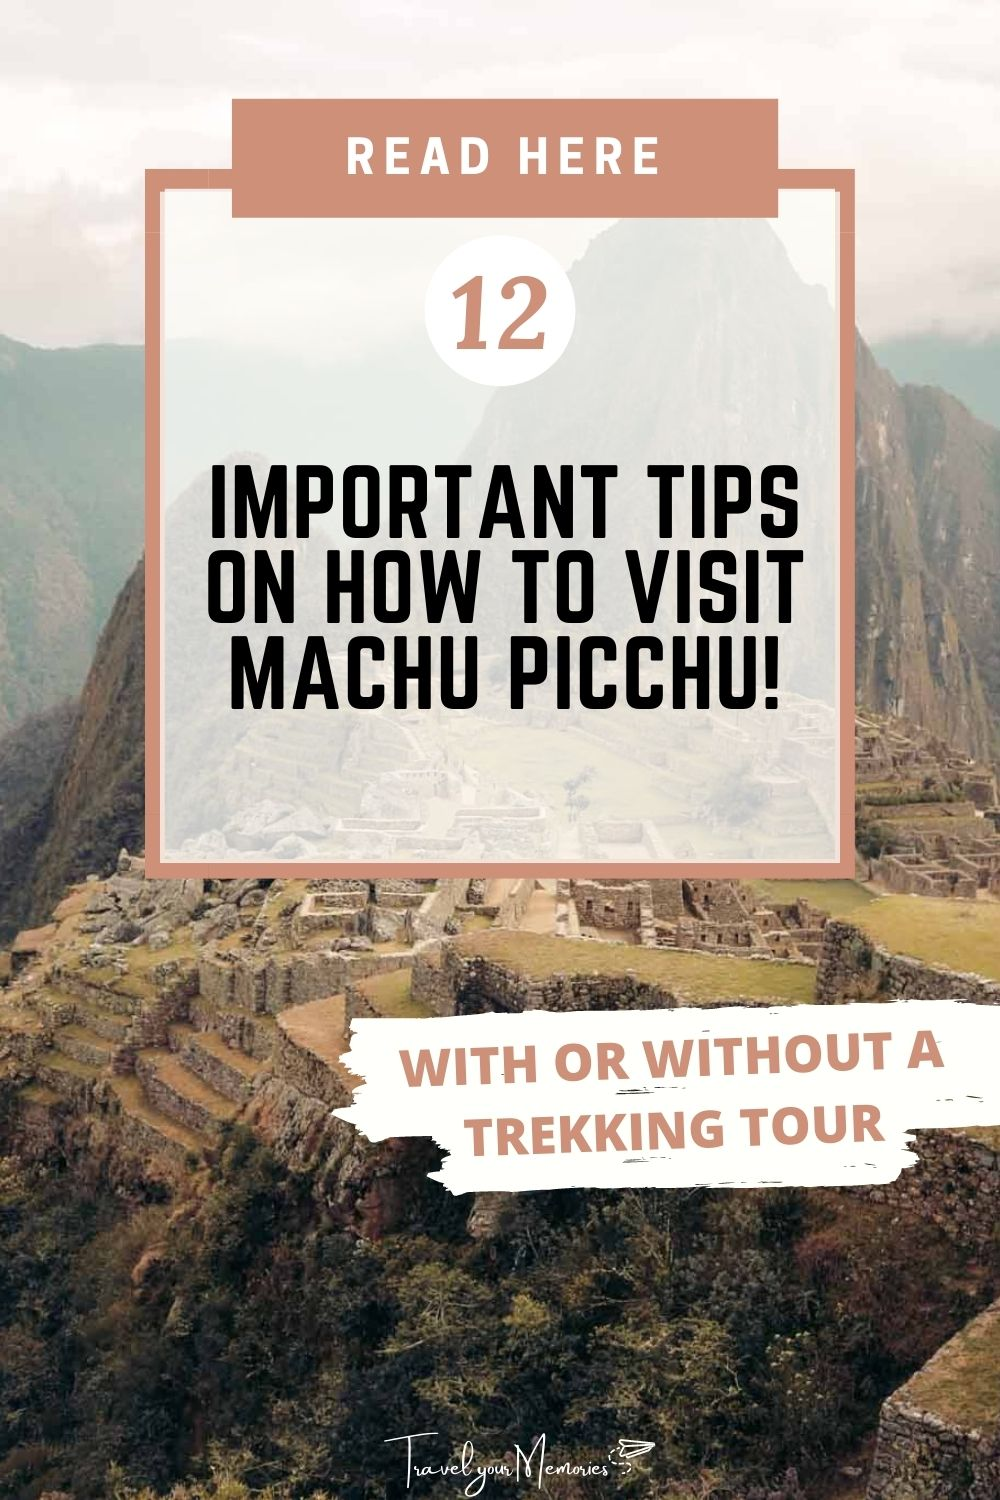 #12 Great Tips How To Visit Machu Picchu With(out) Trekking Tour